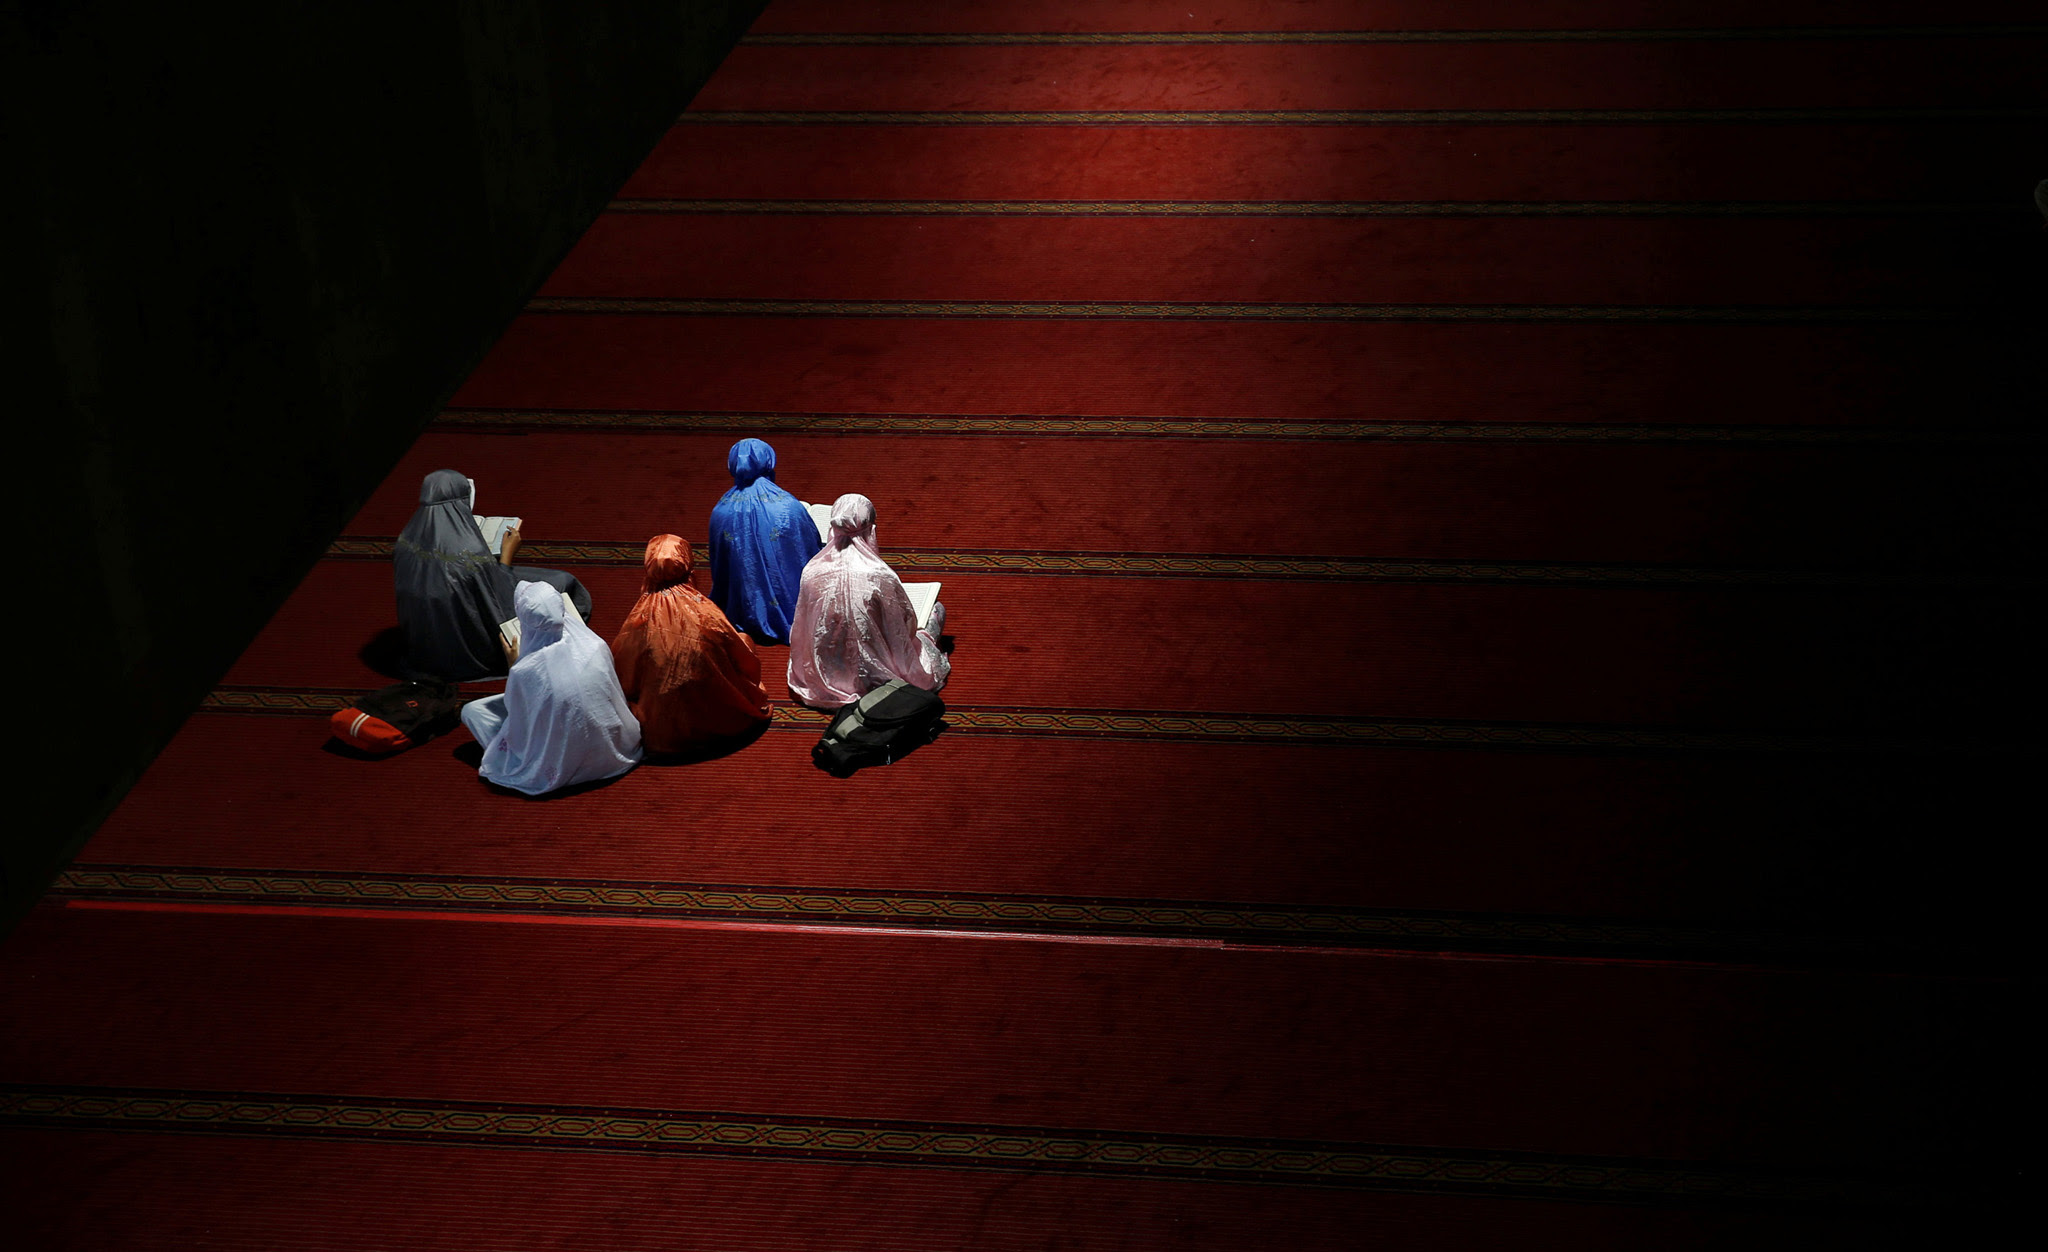 A group of youths read Koran as they wait to break the fast during the holy month of Ramadan inside Istiqlal mosque in Jakarta, Indonesia June 9, 2016.